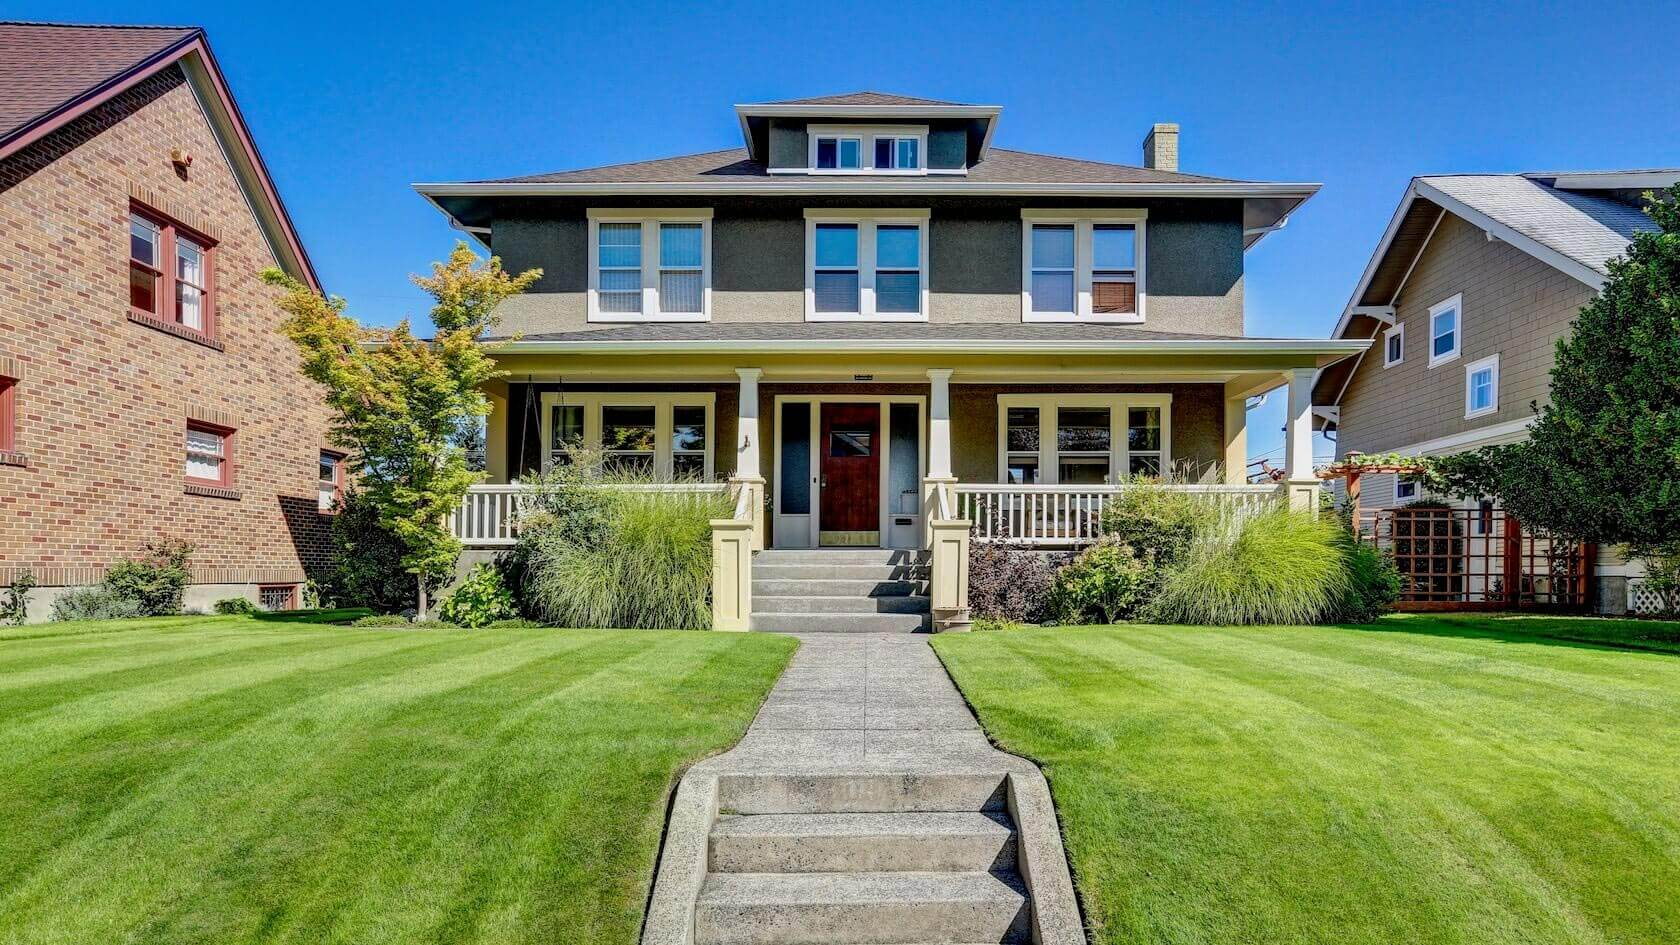 SMART BUYERS GUIDE TO CHOOSING THE PERFECT PROPERTY